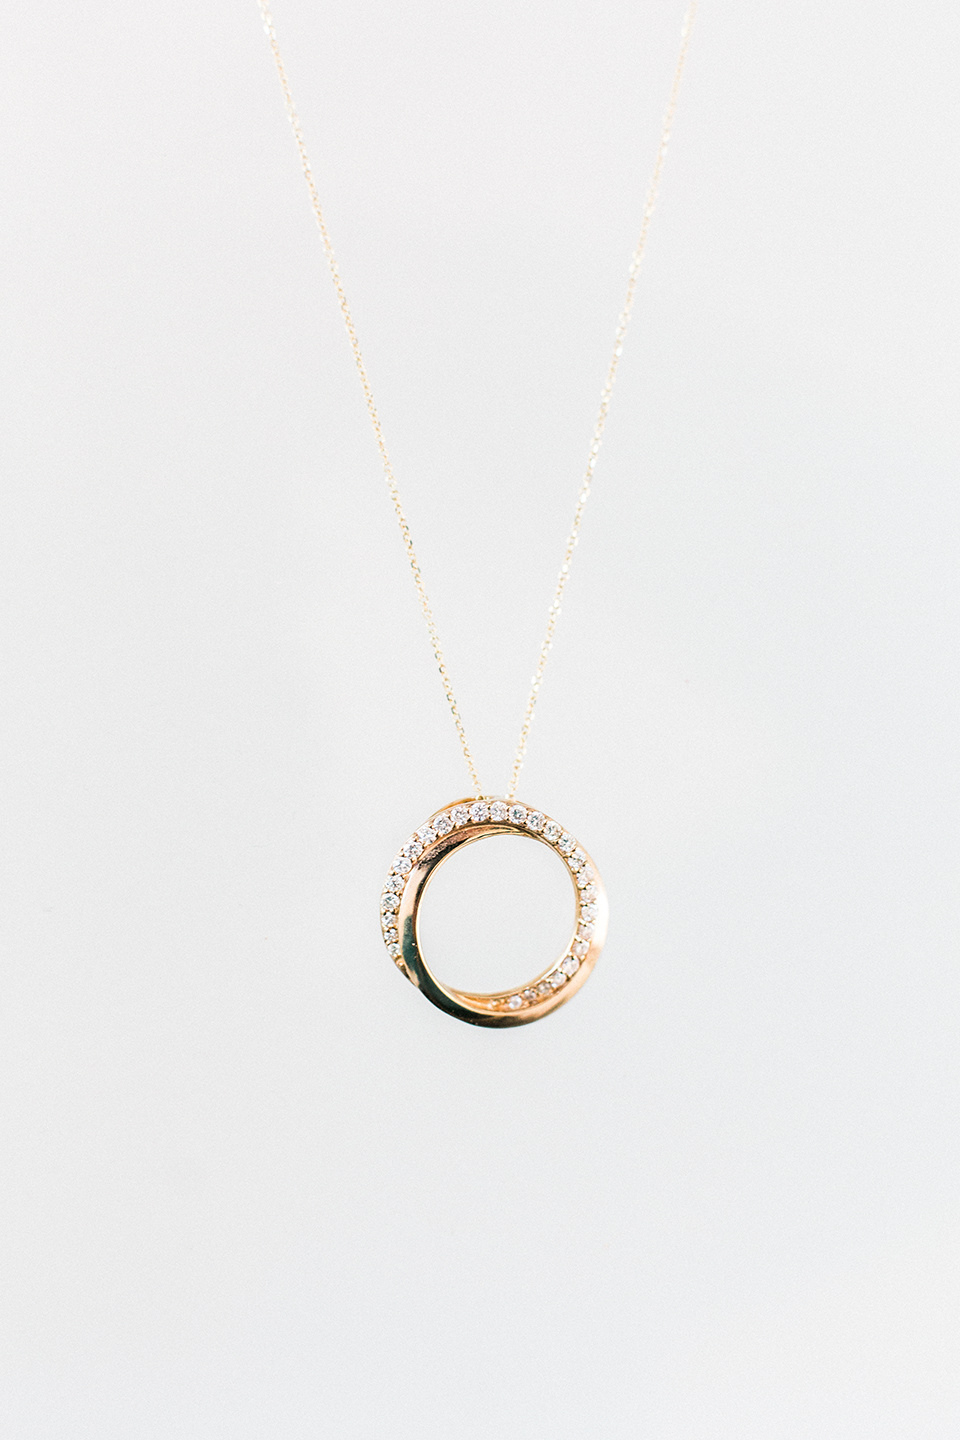 Image of gold diamond necklace in a circle shape.  Simple white background on a thin golden chain.